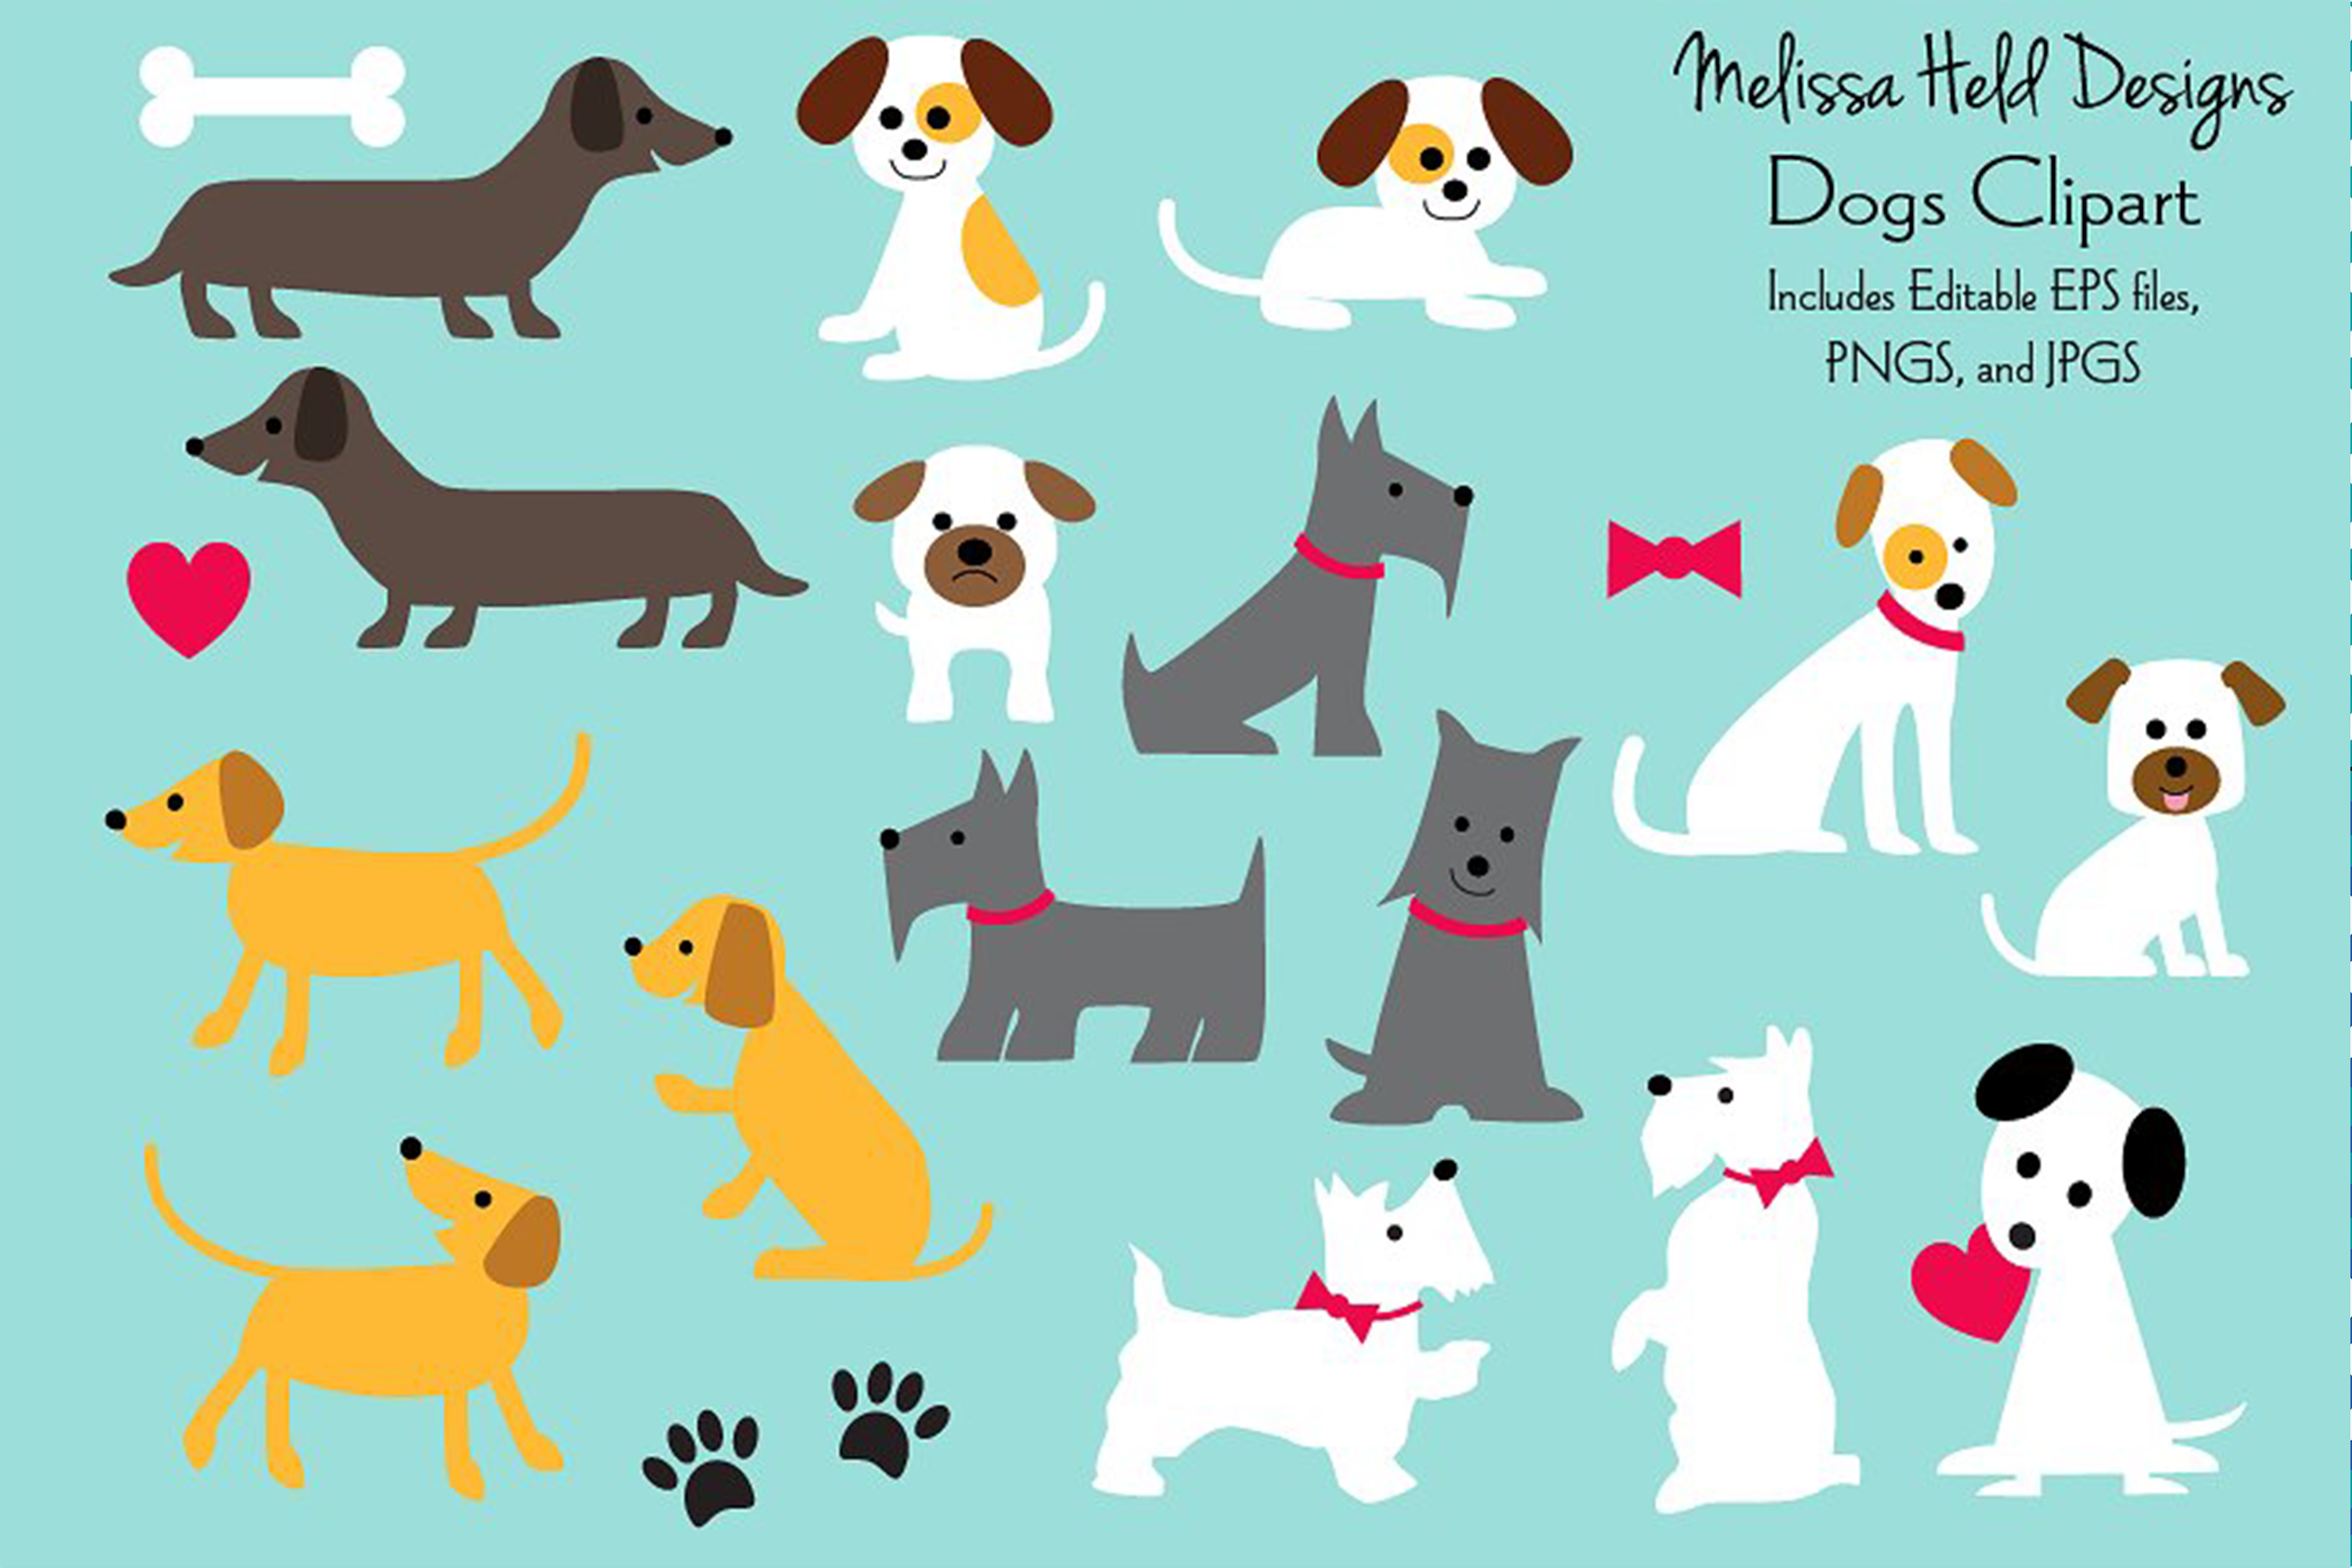 Dogs Clipart example image 1